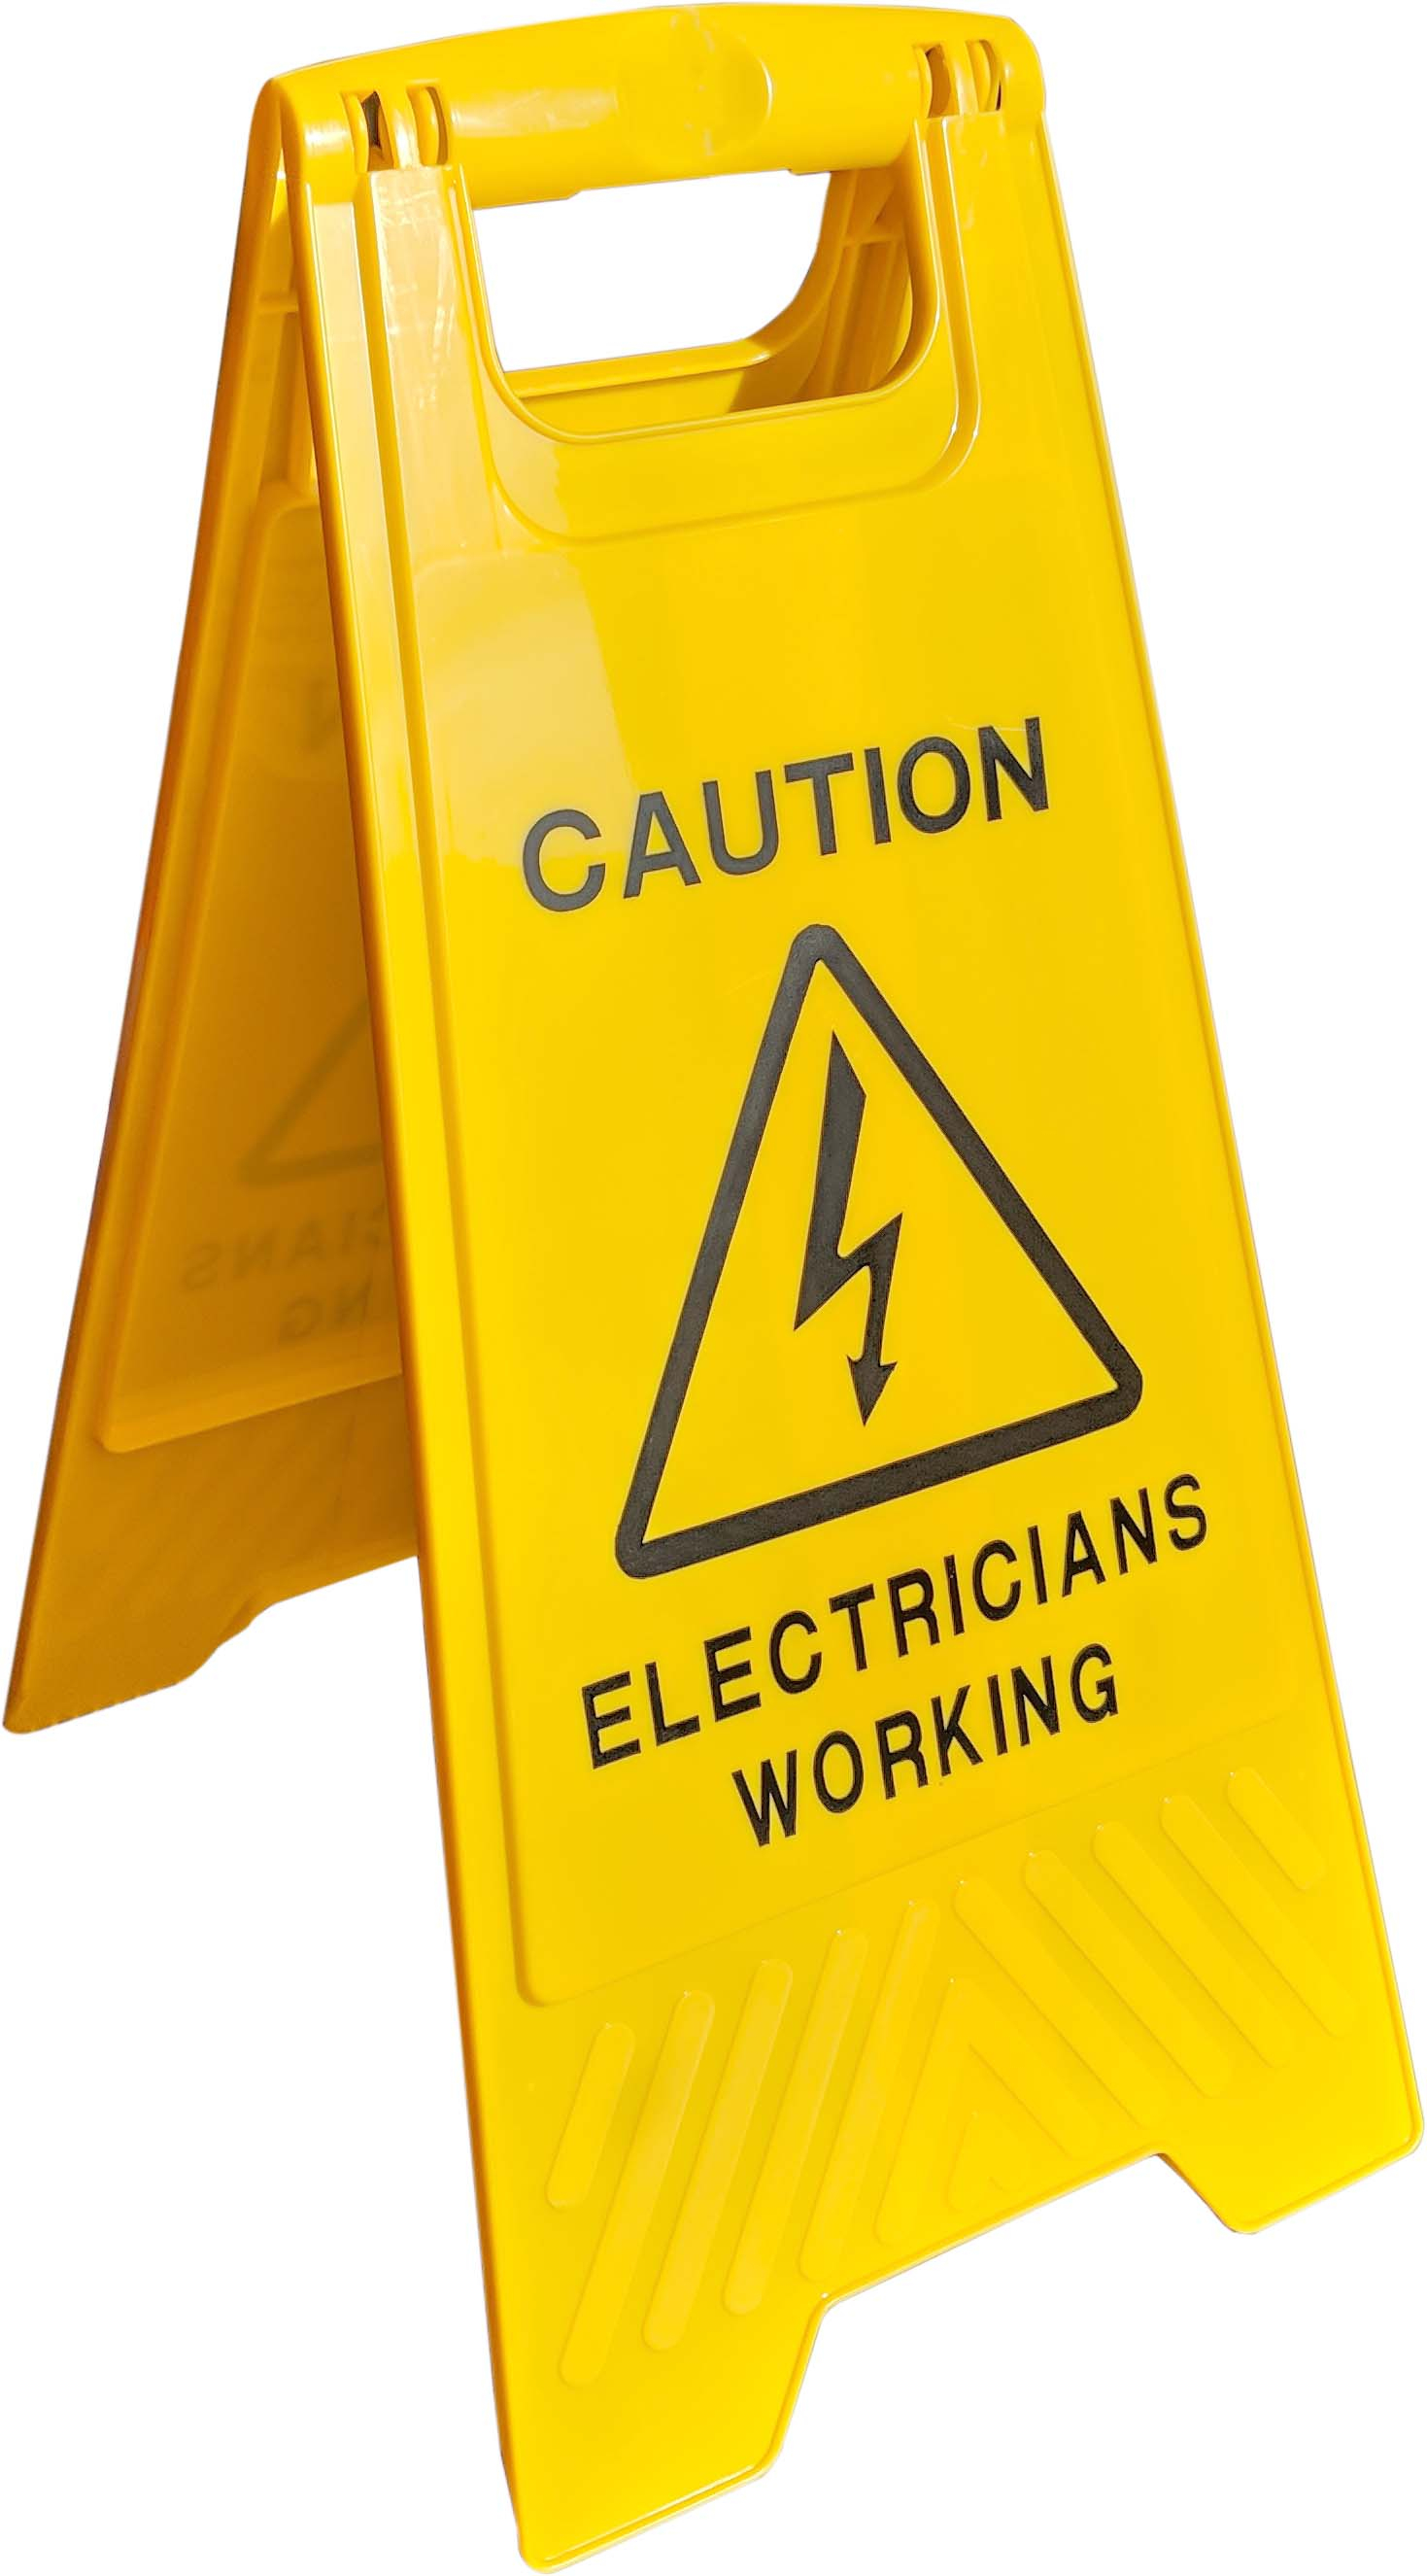 InchCAUTION ELECTRICIANS WORKINGInch SAFETY SIGN